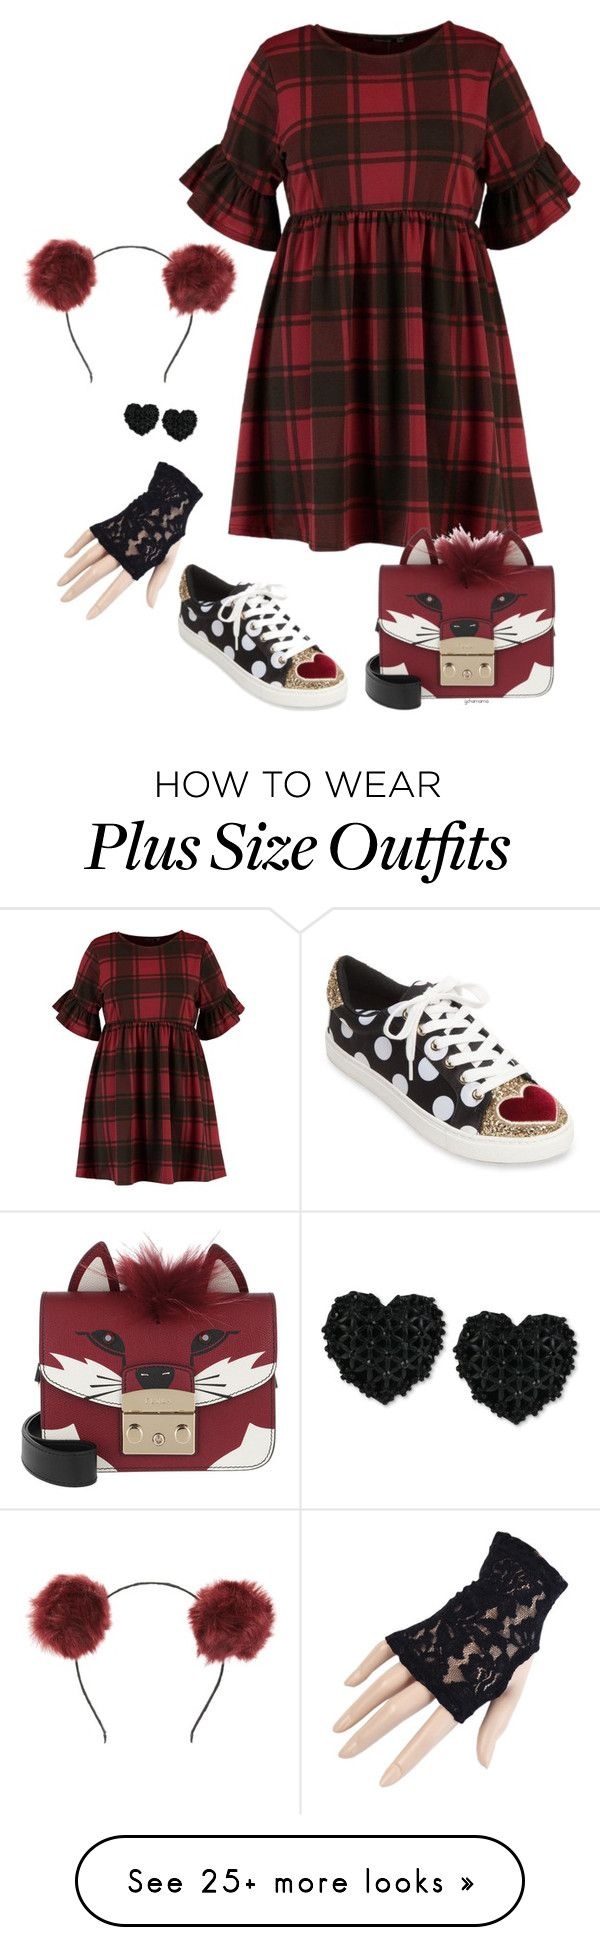 """Foxy- plus size"" by gchamama on Polyvore featuring Tasha, Betsey Johnson, Furla and Black"